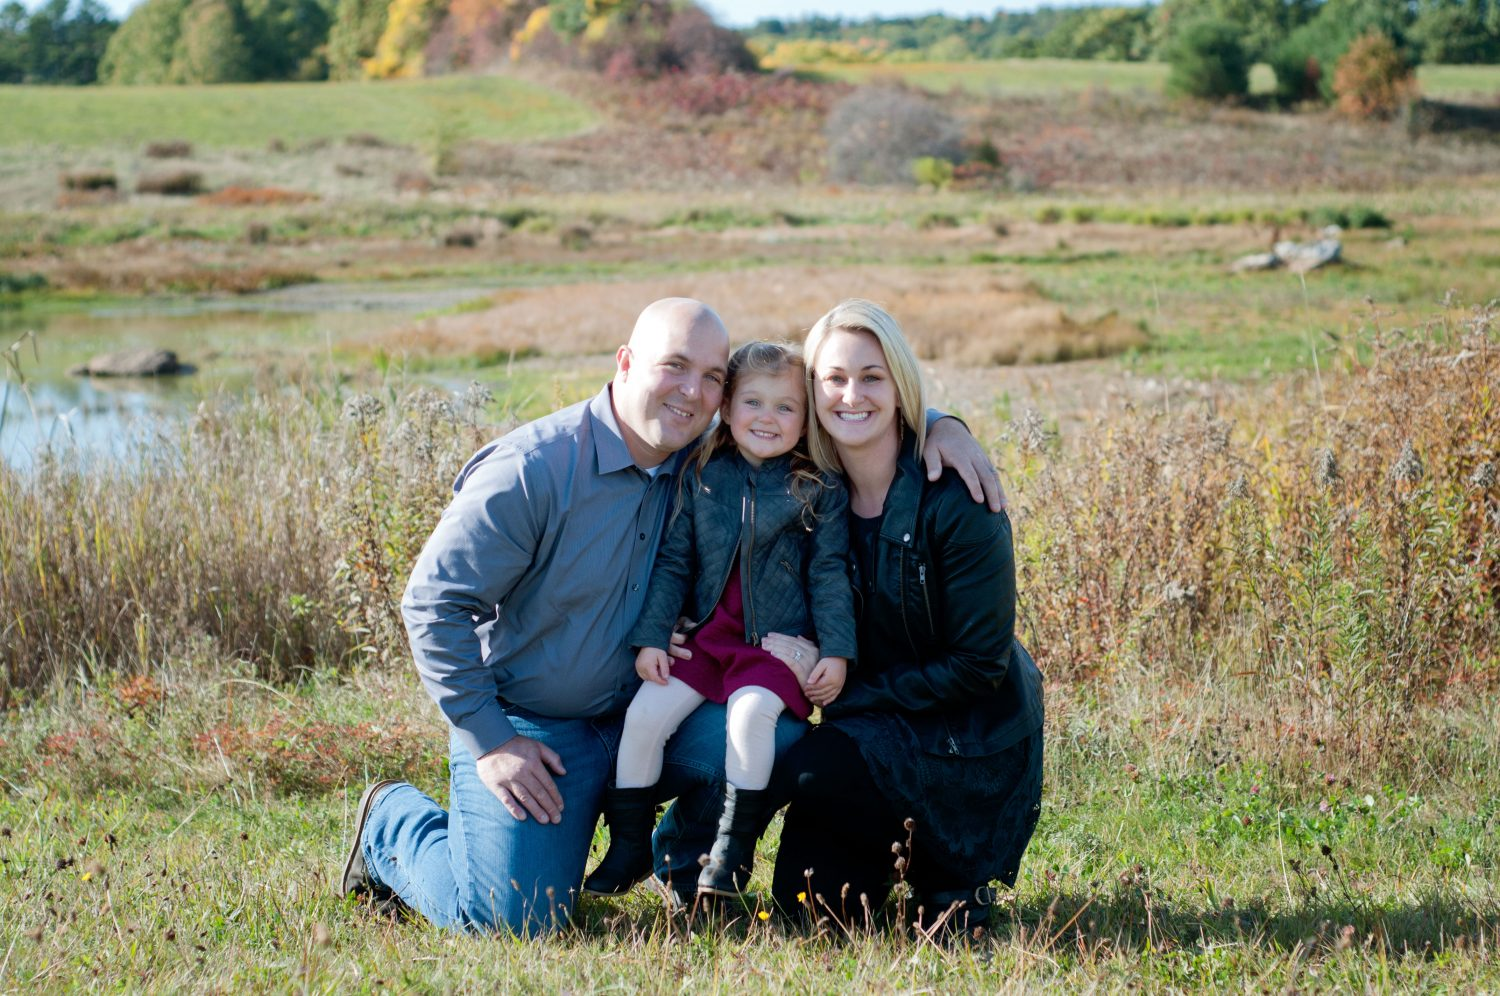 portrait of young family of 3 in an autum field